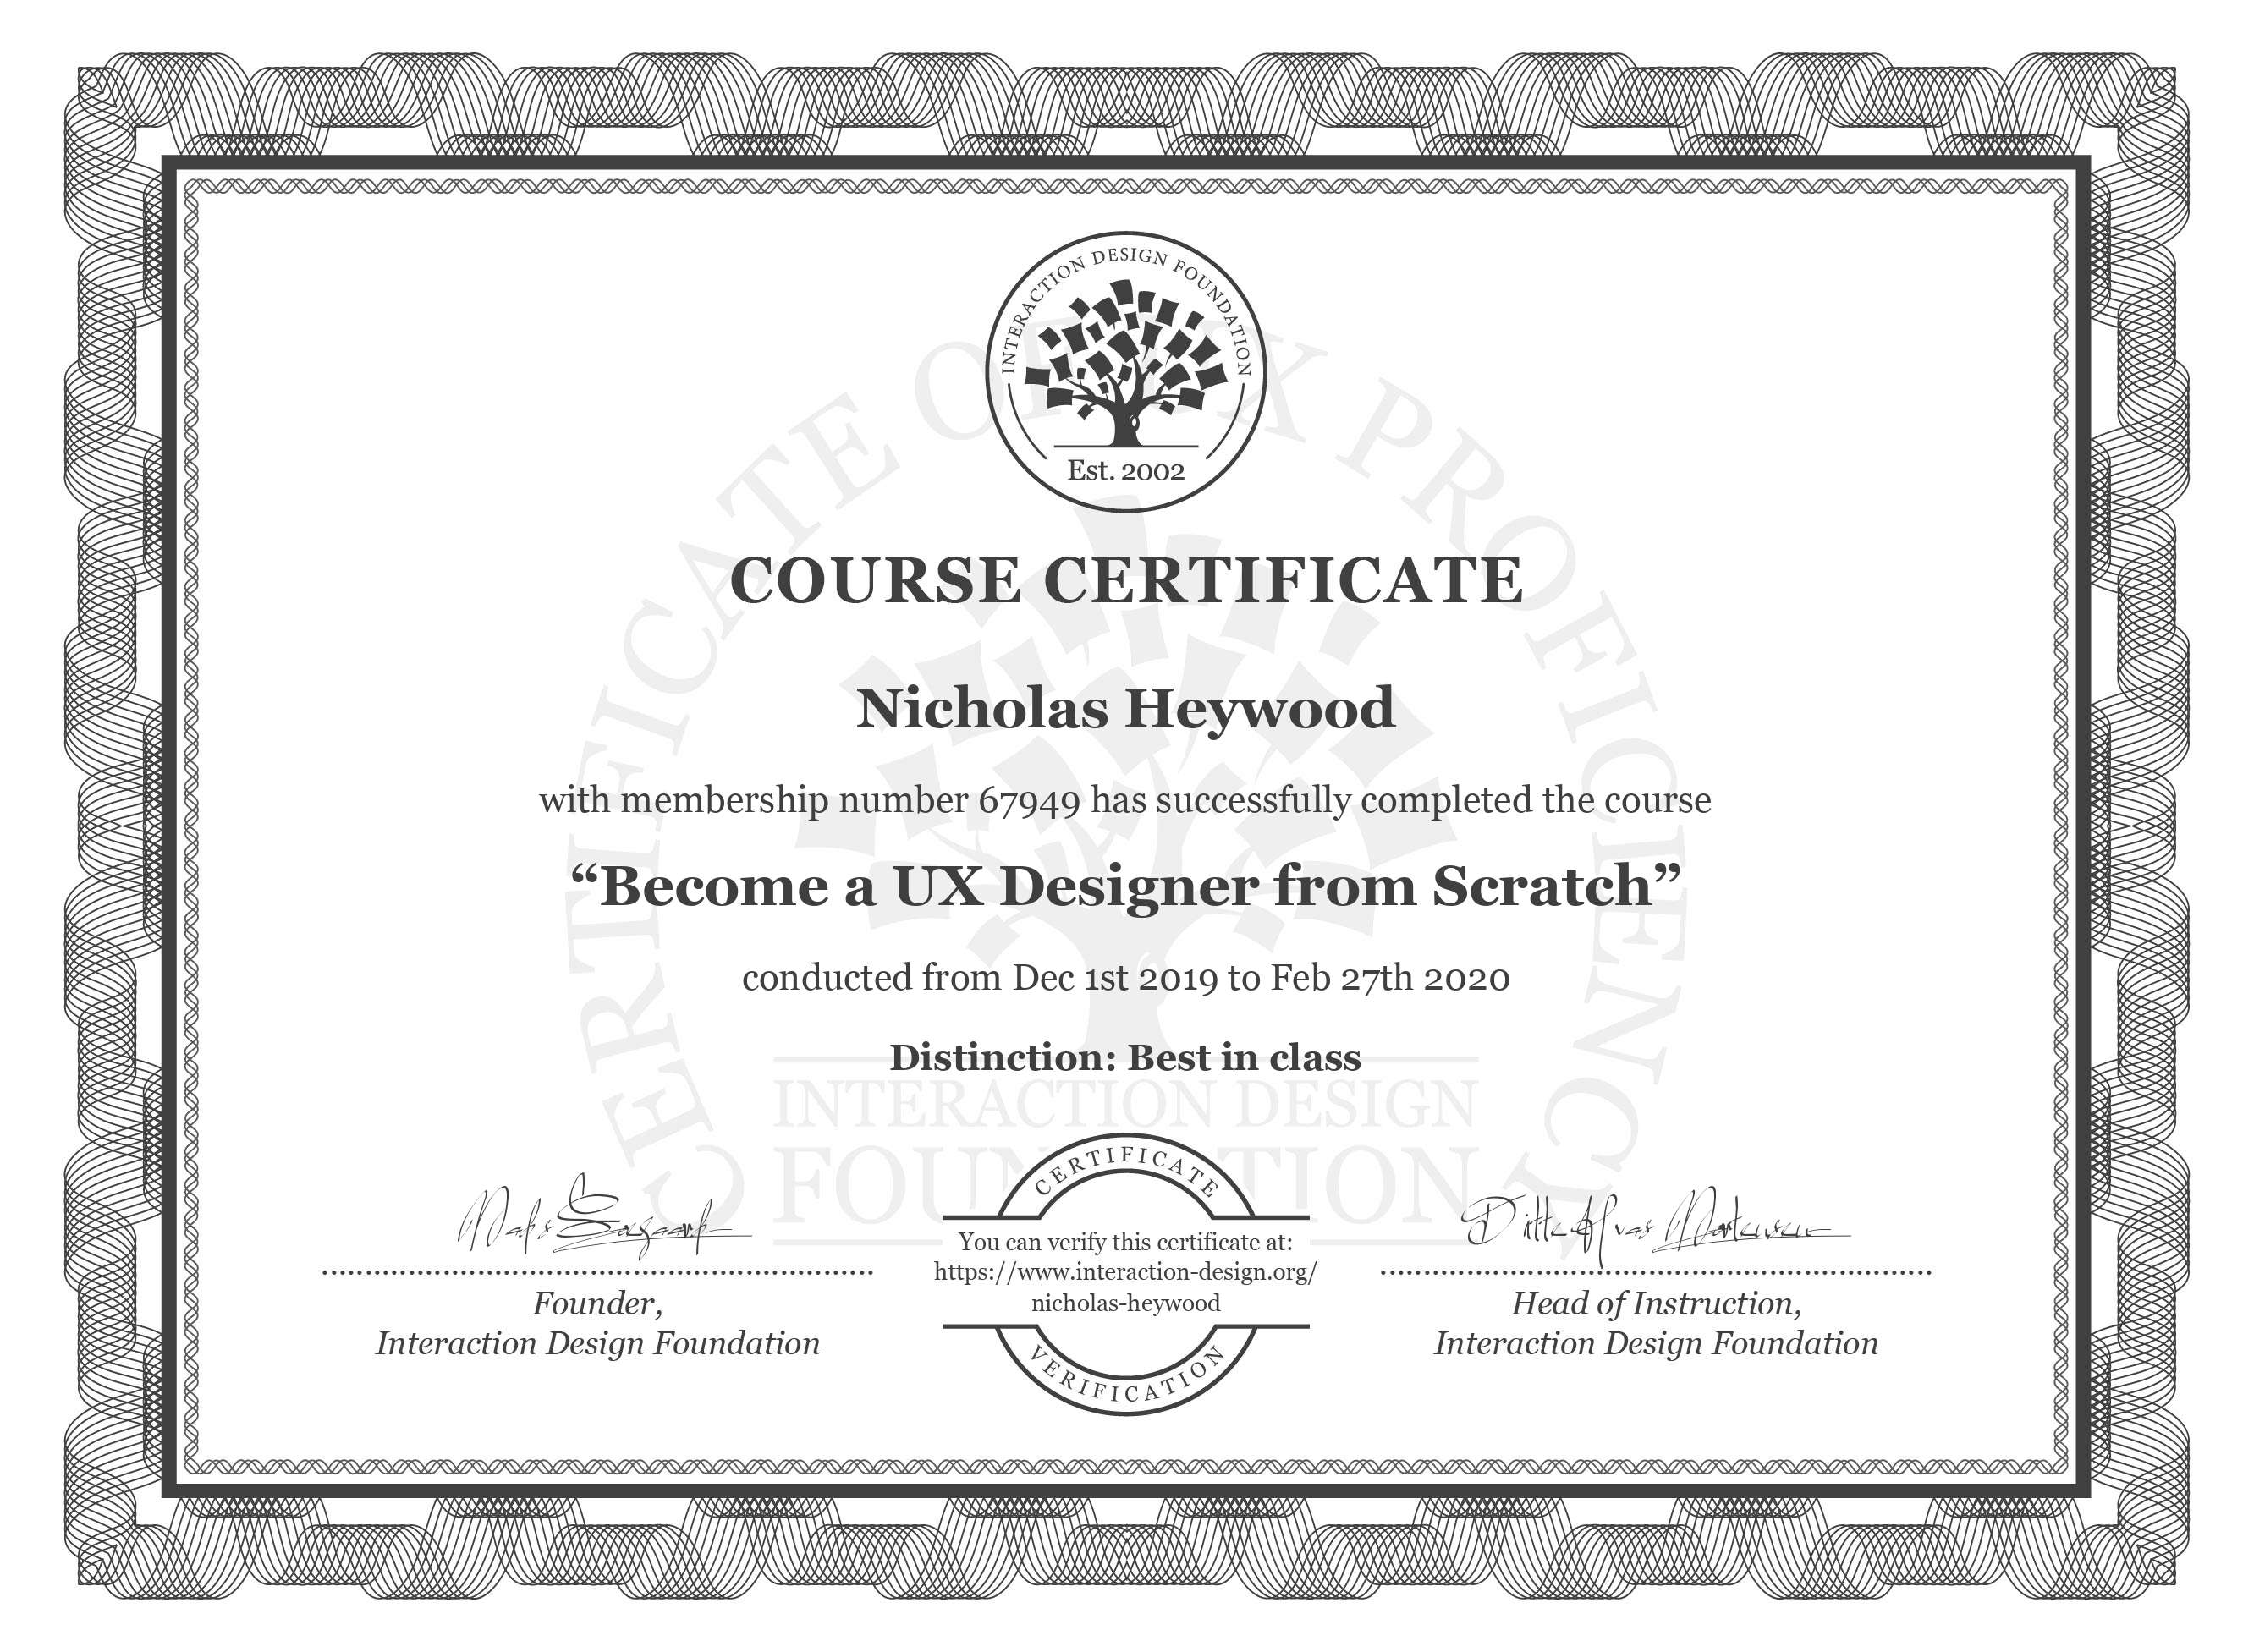 Nicholas' Certificate for completing a User Experience Designer course with IDF